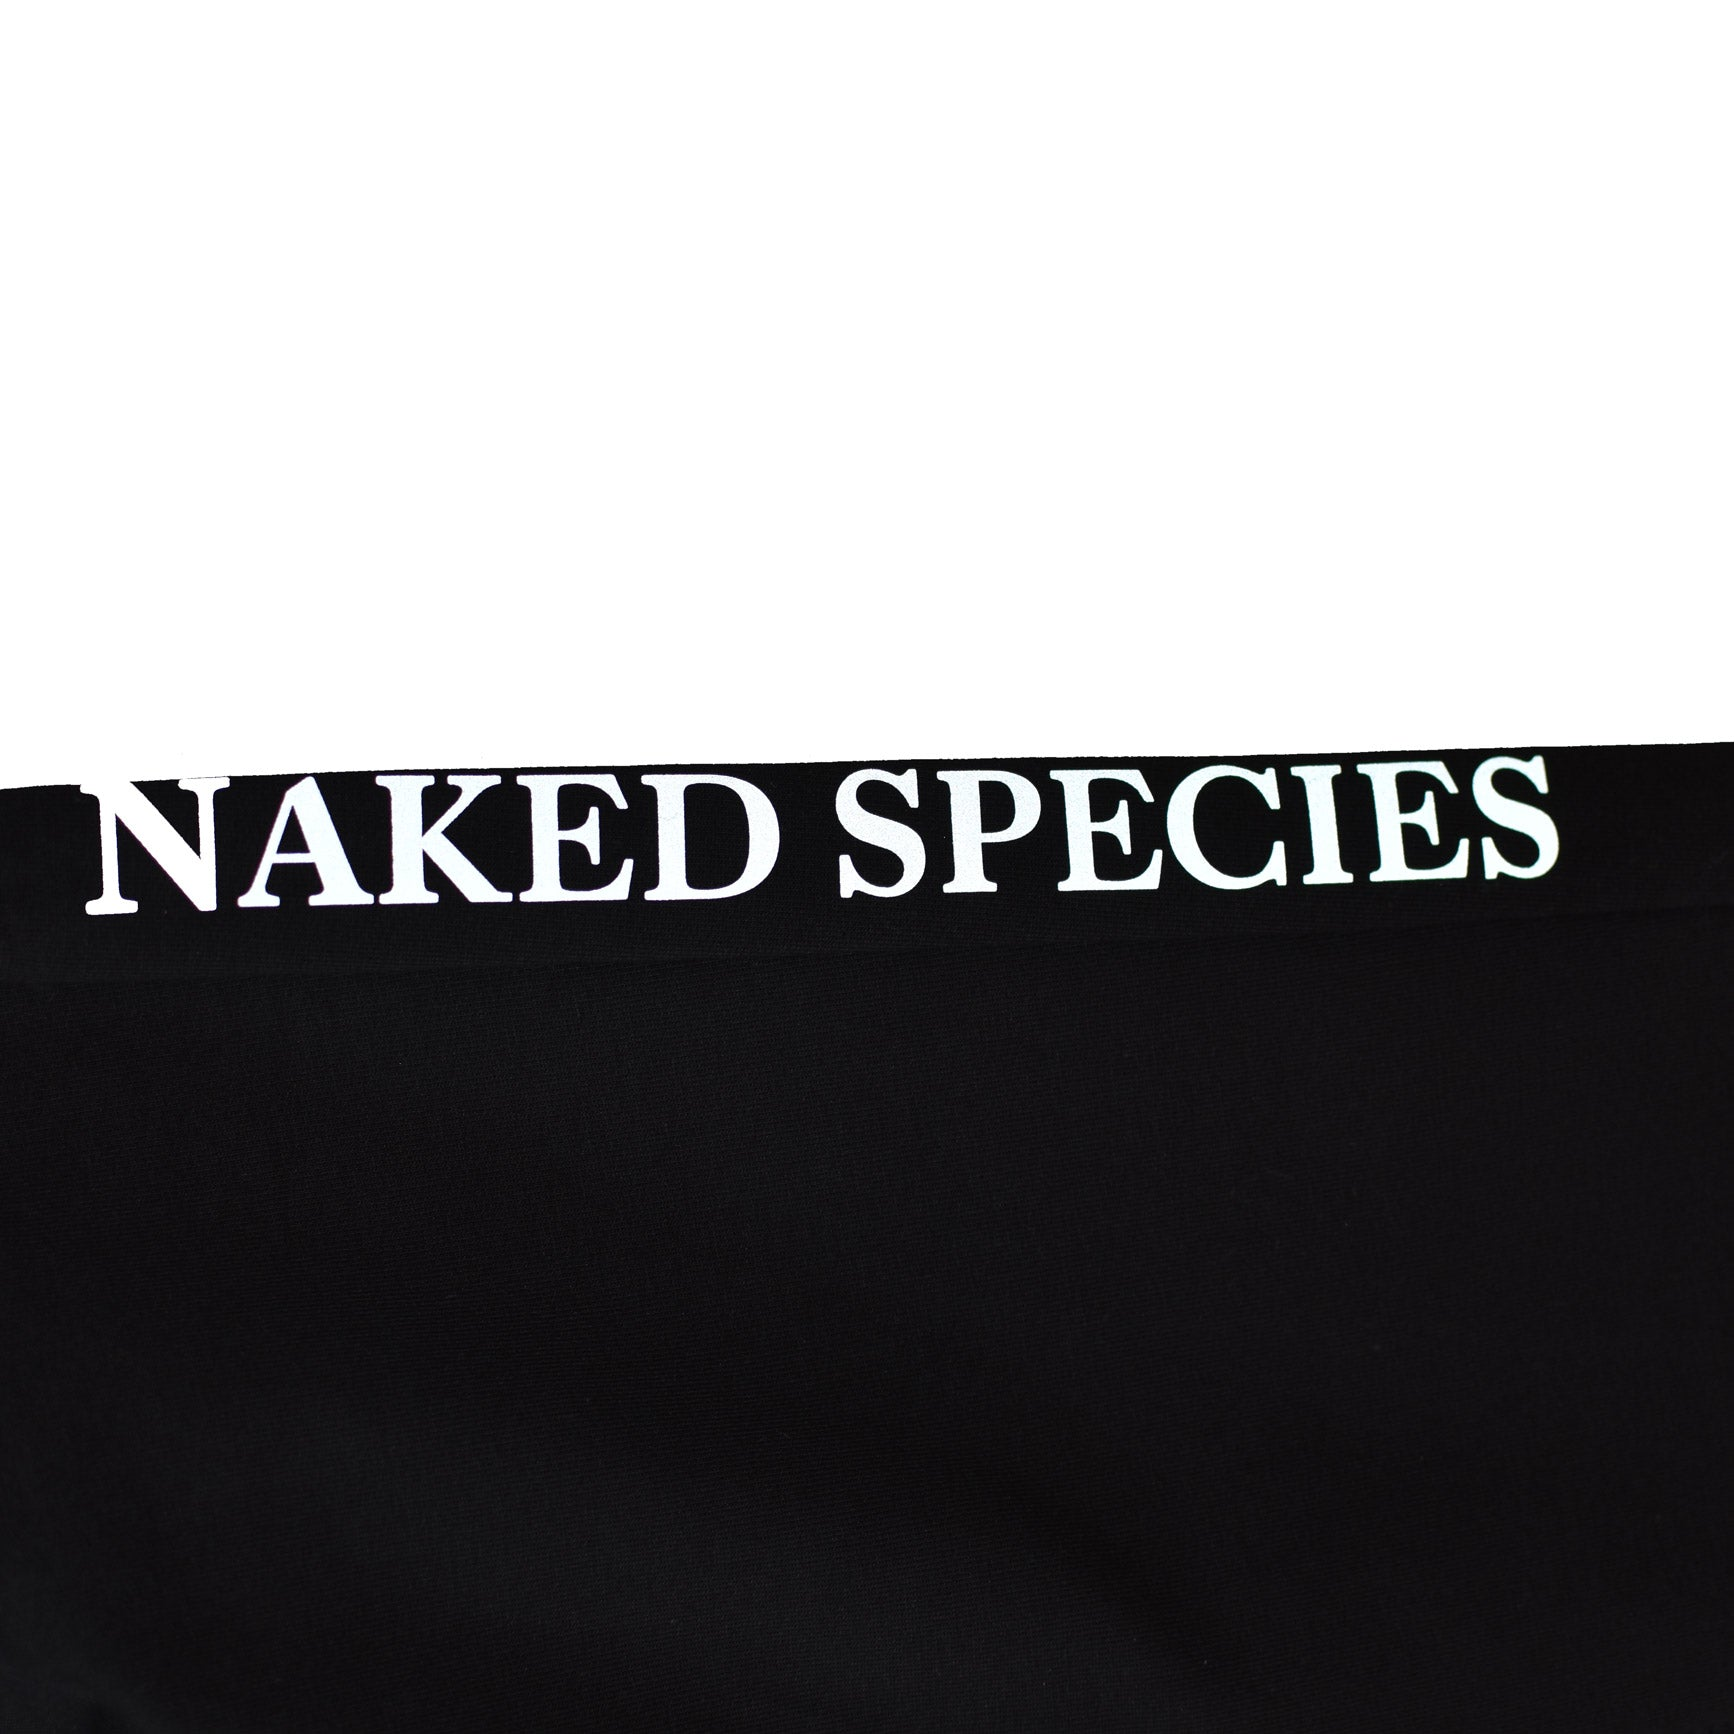 NakedSpecies-black-pants-reflective-logo